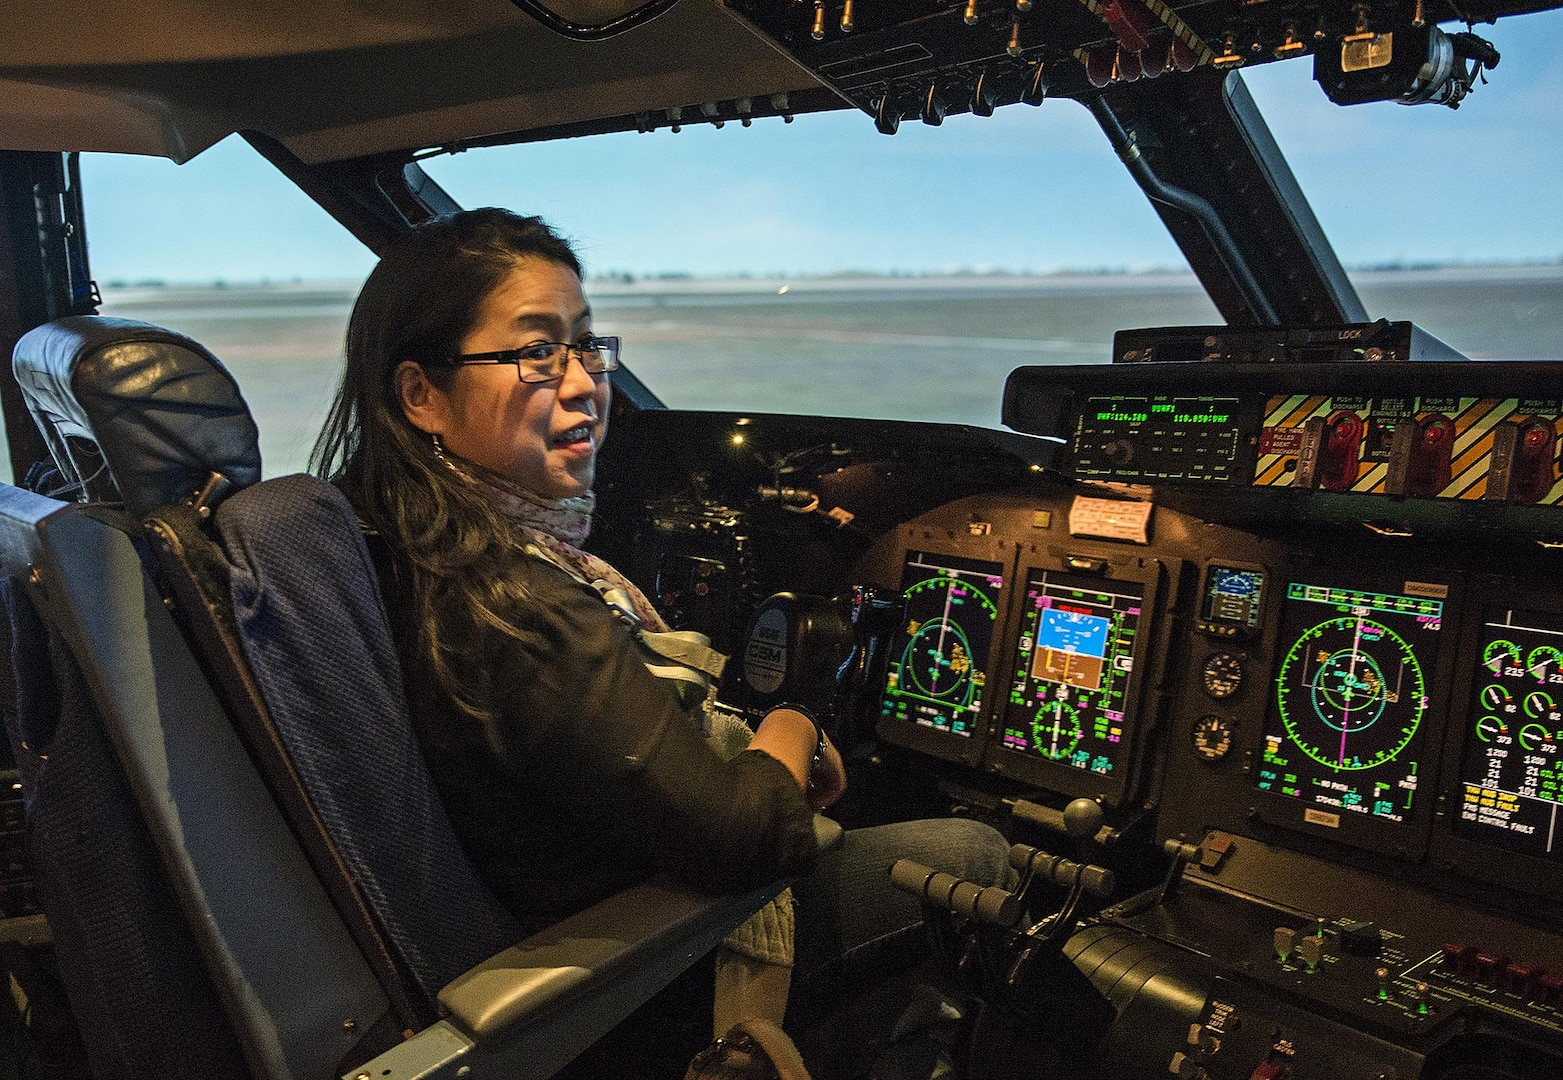 Aryn Lockhart, 17th Training Wing graphic artist, sits in the pilot seat  of a C-5 simulator at the 733rd Training Squadron Dec. 19, 2016 at Joint Base San Antonio-Lackland, Texas. Lockhart was an infant aboard the ill-fated C-5 flight out of Vietnam on April 4, 1975 during Operation Babylift. (U.S. Air Force photo by Benjamin Faske)